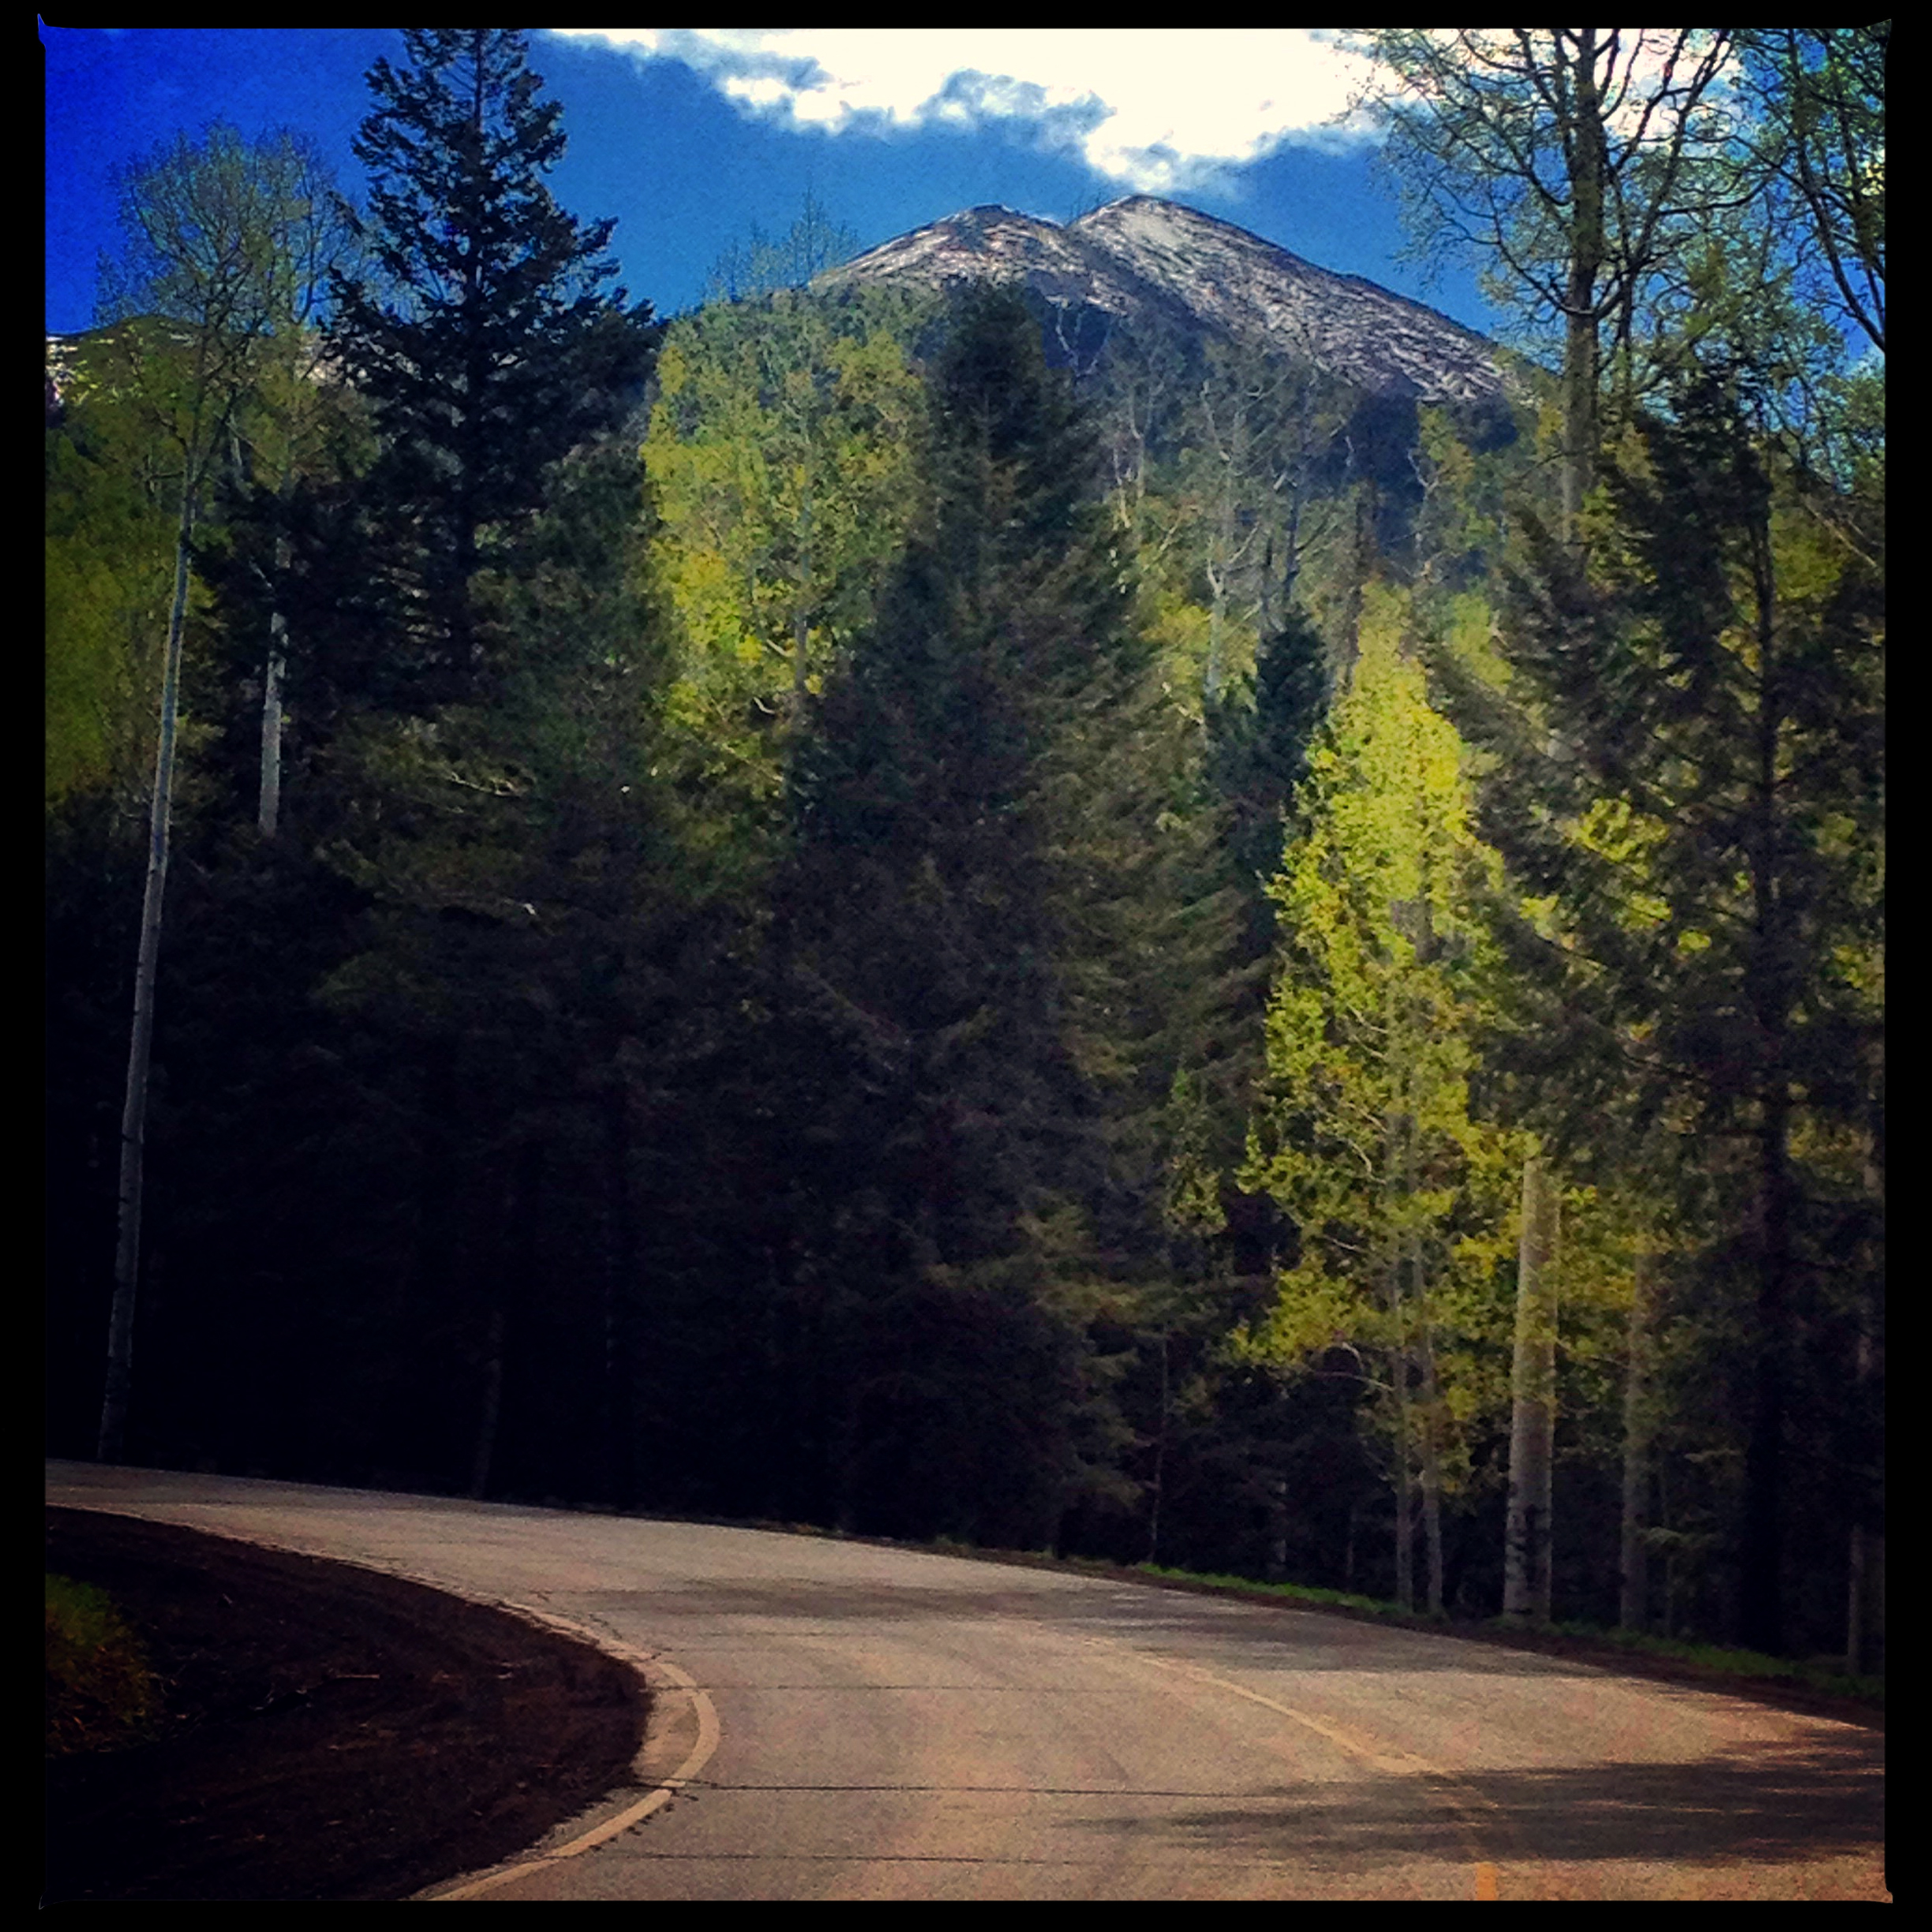 Snowbowl Road, Flagstaff, AZ   June 30, 2015   Well, here it is, the last day of June. I have July and most of August to complete my training program and be ready to roll! Last Saturday, I rode in Flagstaff because it's like a sauna inside an oven in Phoenix. I was scheduled to ride 120 miles. I've never been on a bike for more than 100 miles and that was 10 years ago. For some reason it was not all that daunting. I thought I could do it with little or no trouble if I started early and finished early. You see, Flagstaff is having a bit of a heat wave. The forecast was sunny and high in the low 90's. That's hot for Flagstaff. Real hot. Anyway, up at 3:30 am, on my bike by 5:00 am and 7 hours 30 minutes later, j'ai fini.It was sunny, hot and humid until mile 118 when a monsoon rain fell on me. It cooled down 15 degrees just as I was finishing. Coup de veine!   July 27, 2015   July has come and is nearly gone. What started out as a horrible month has ended up being superb. I won't bore you with all the details but suffice it to say I thought I was going to have to give up the dream of cycling across the country due to illness!But, I survived a week of the flu and have come back stronger and more motivated. I rode 120 miles on Saturday and rode up Snowbowl Road on Sunday, we are close to $40,000 in donations, and the fundraising dinner at Dominick's Steakhouse on August 8, is reaching capacity. Everything is lining up just perfectly.   July 31, 2015   It is the last day of July. I got my kits from Borah Teamwear this week. This is what I'll be wearing across the U.S.